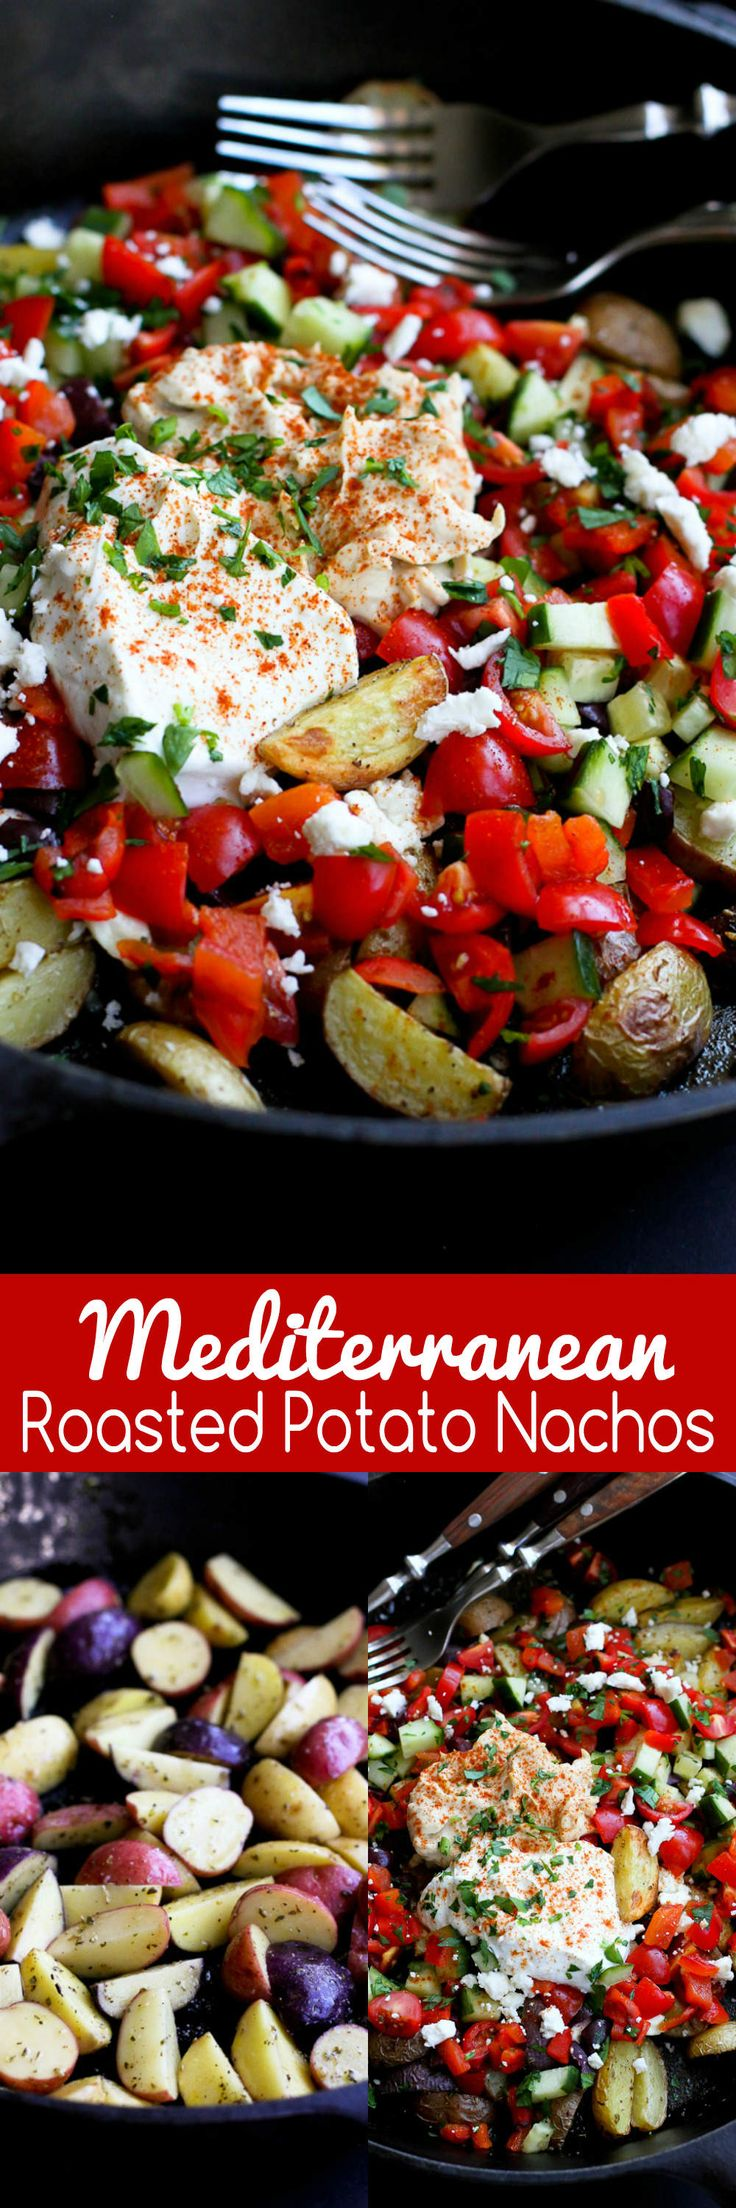 Mediterranean Roasted Potato Nachos…Bring a bunch of forks to the table and let everyone dig into this delicious, healthy appetizer! 144 calories and 5 Weight Watchers SmartPoints